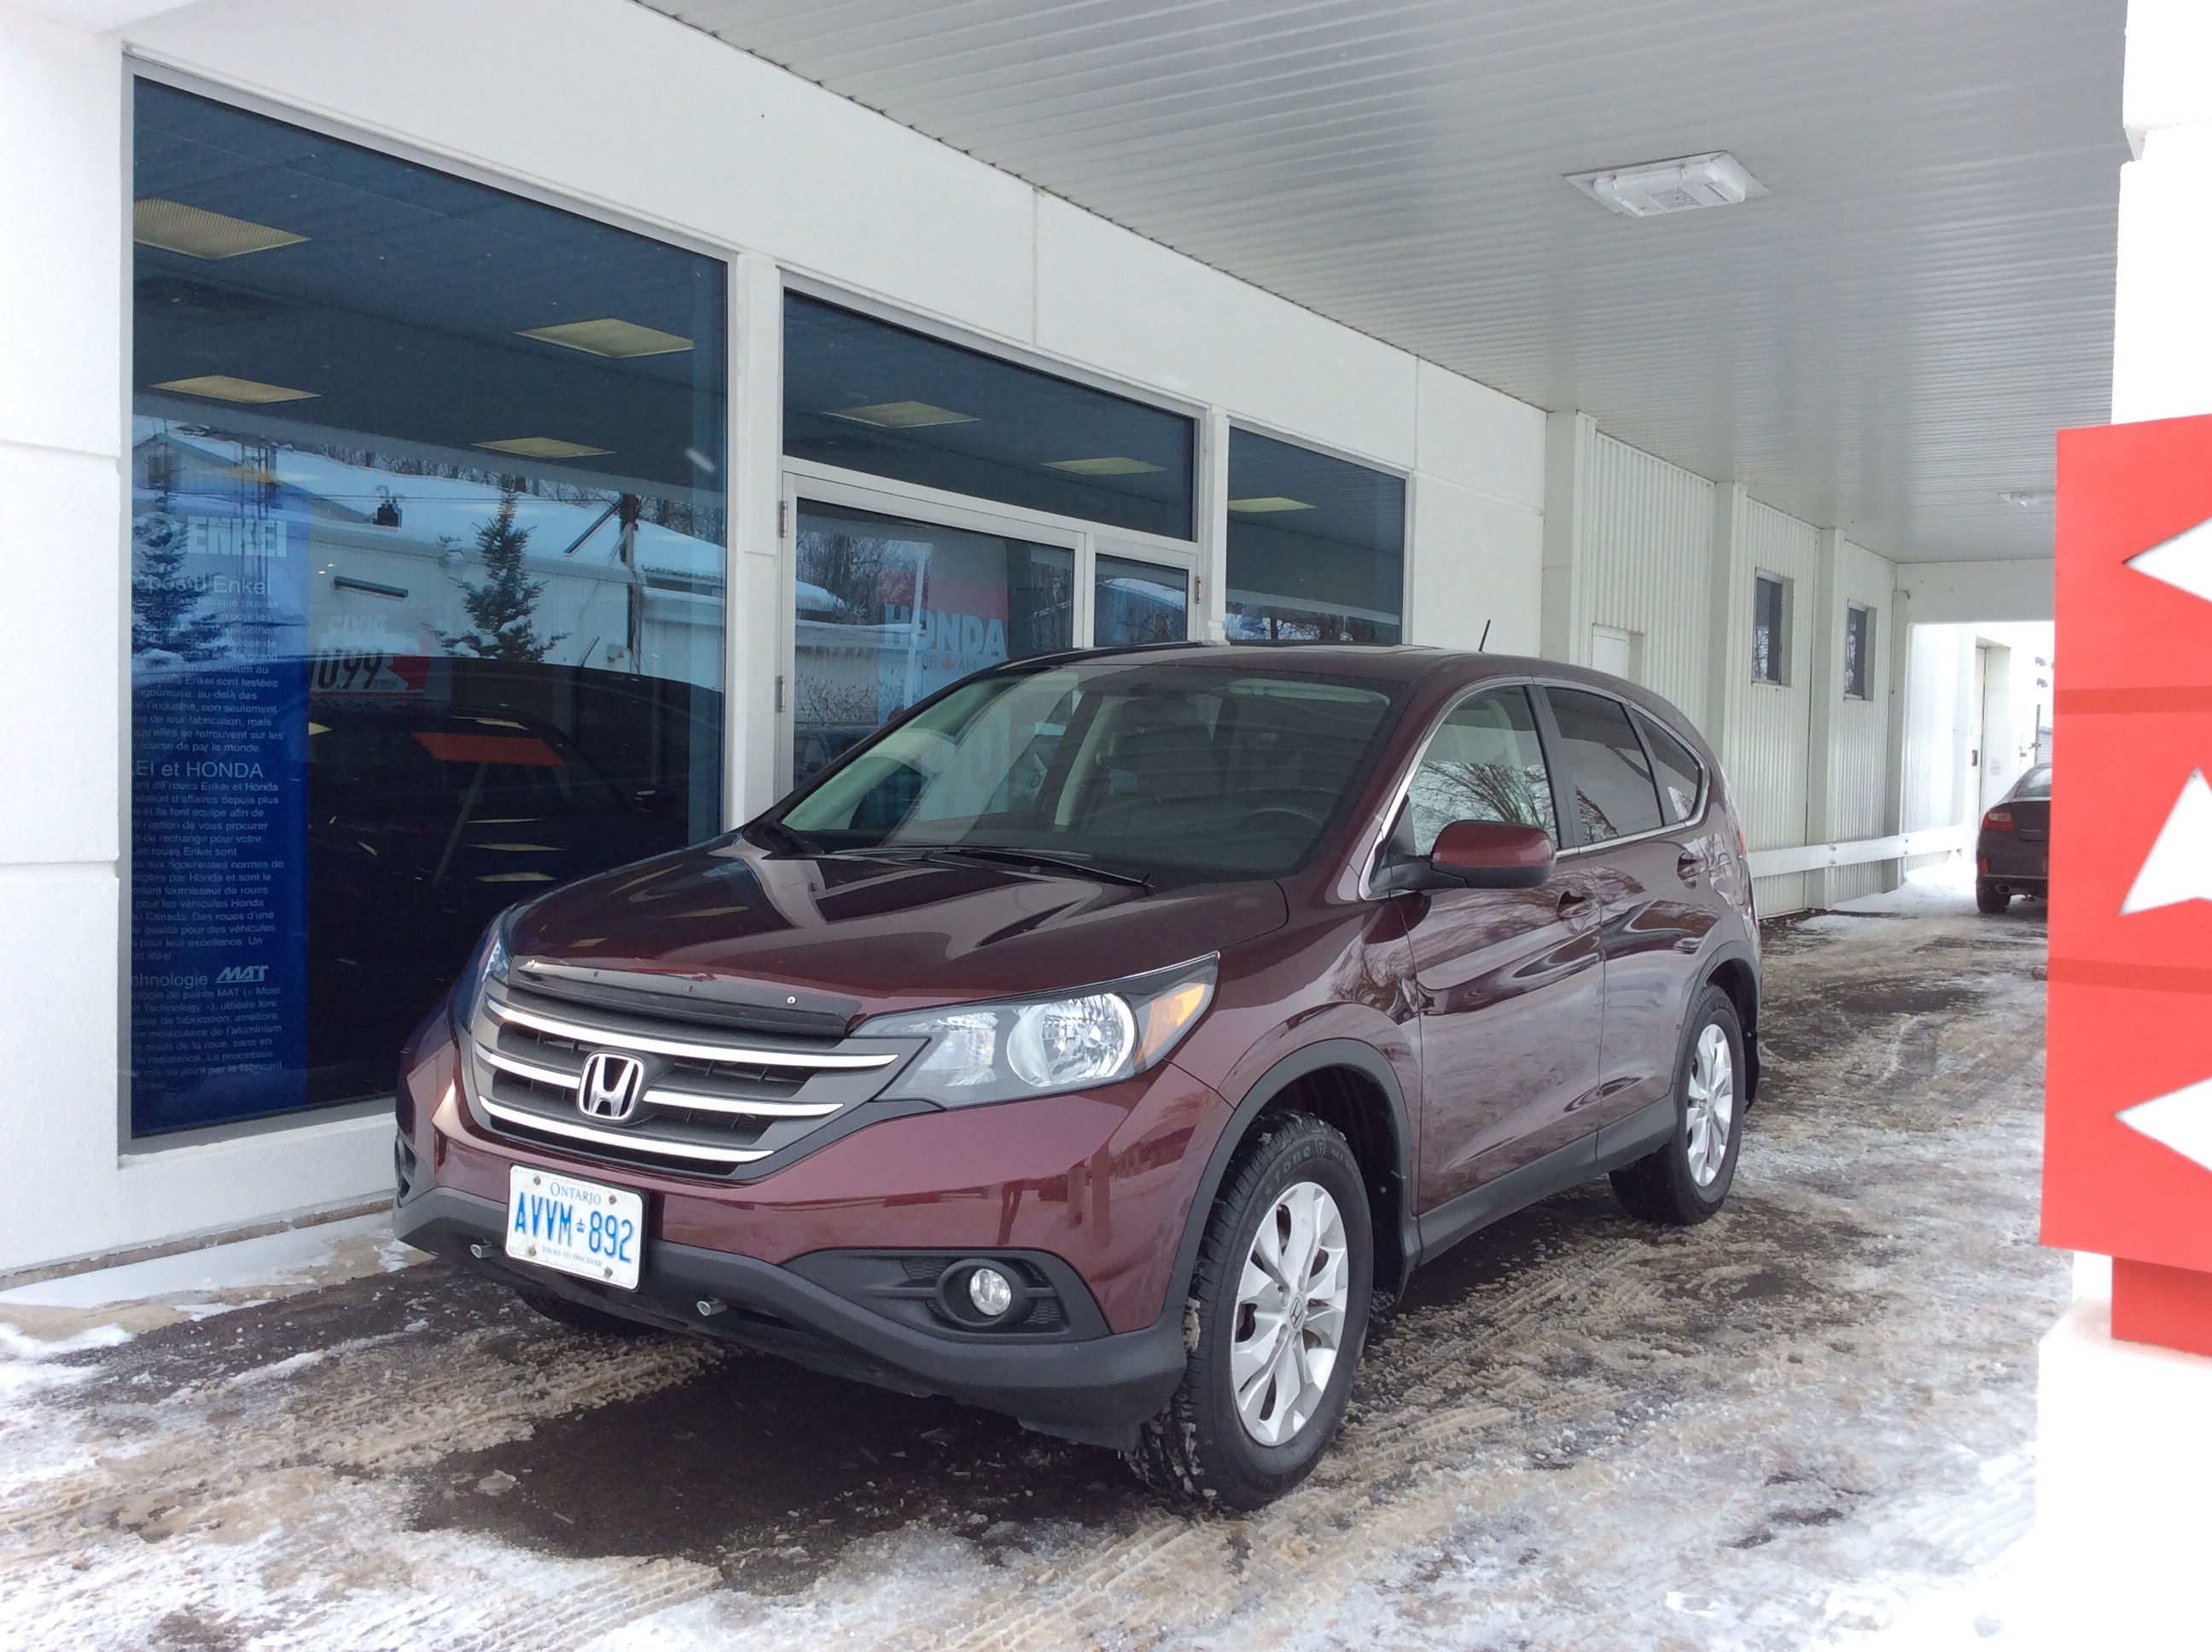 This Is My 2nd Honda From Brockville Mike Always Very Helpful And Thorough